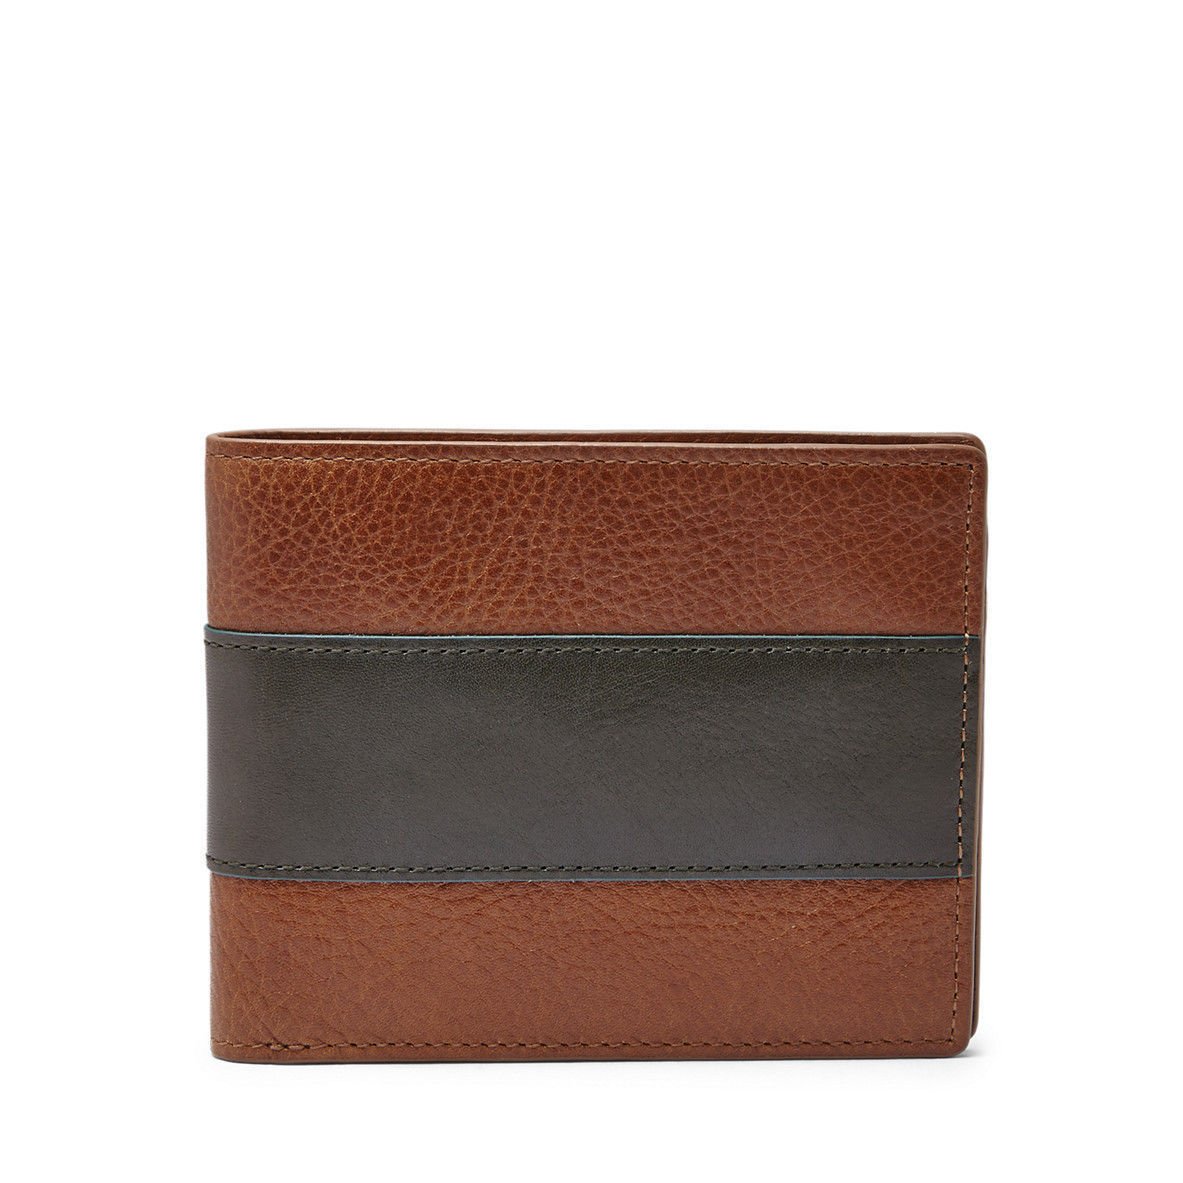 NEW FOSSIL MEN'S LEATHER CHARLES BIFOLD CREDIT CARD WALLET COGNAC